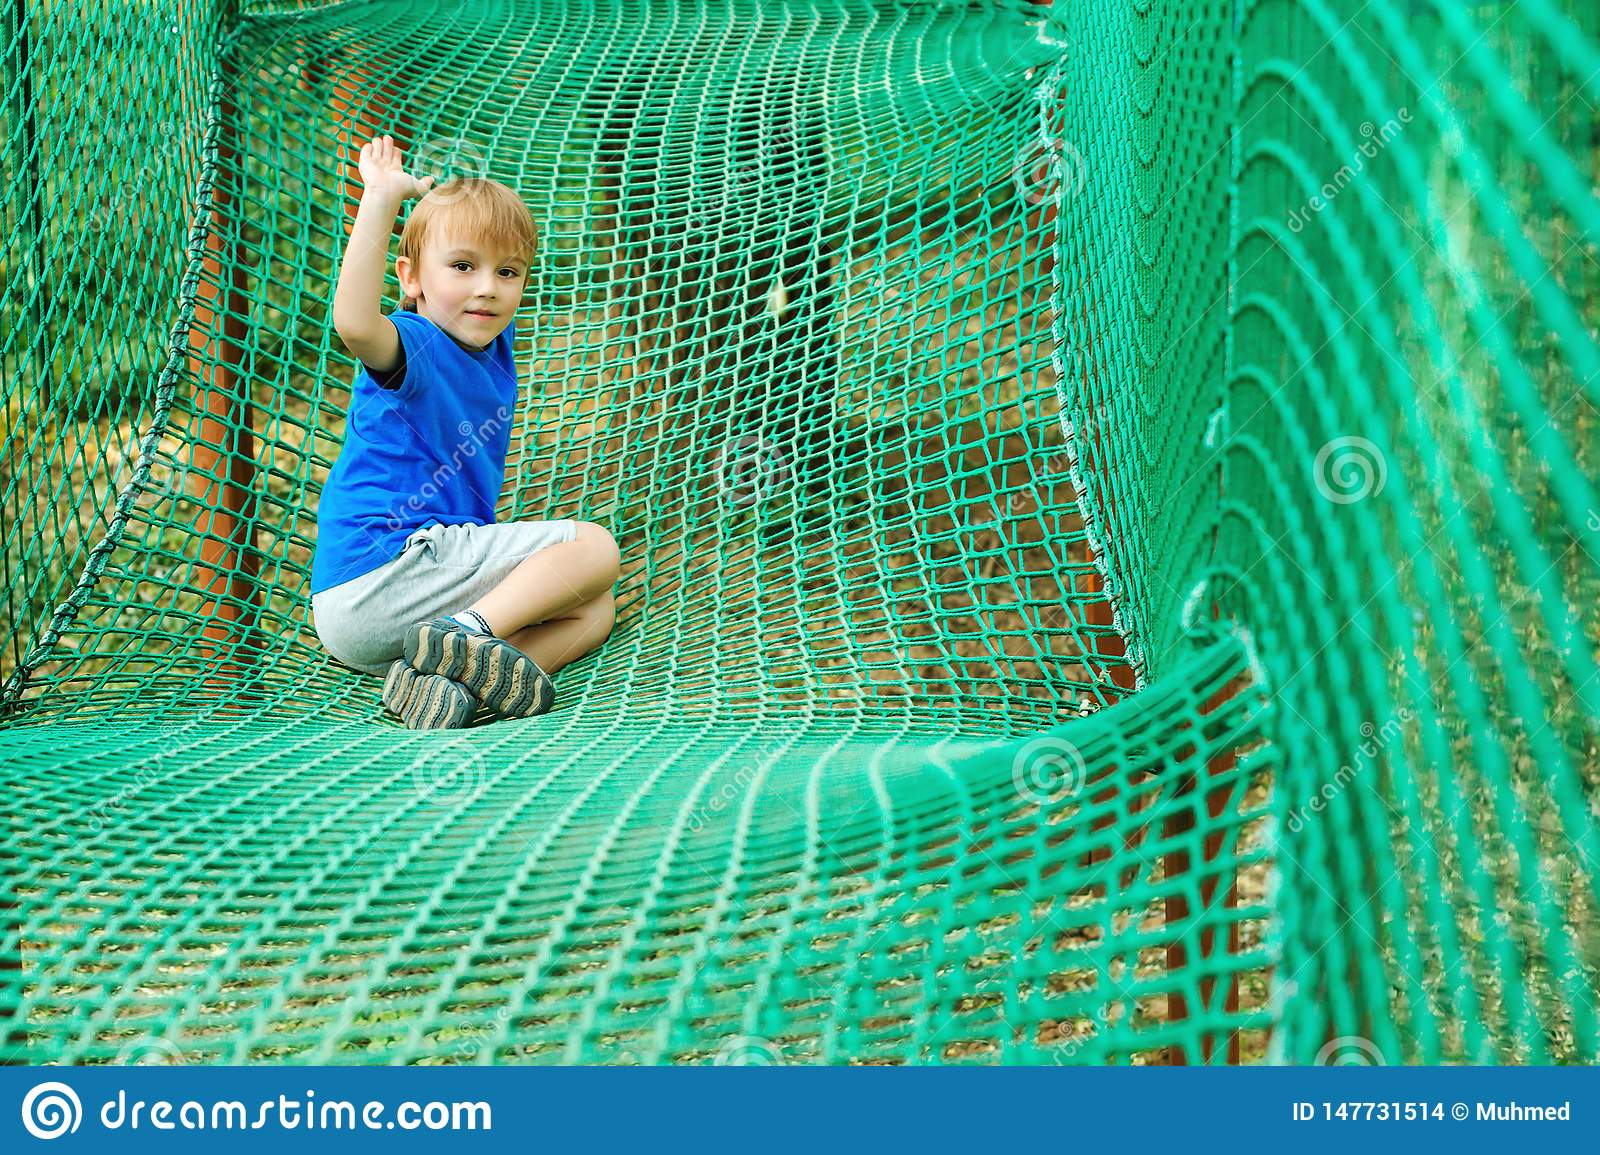 Cute boy overcomes obstacles in rope adventure park. Summer holidays concept. Happy kid playing at rope adventure park. Amusement